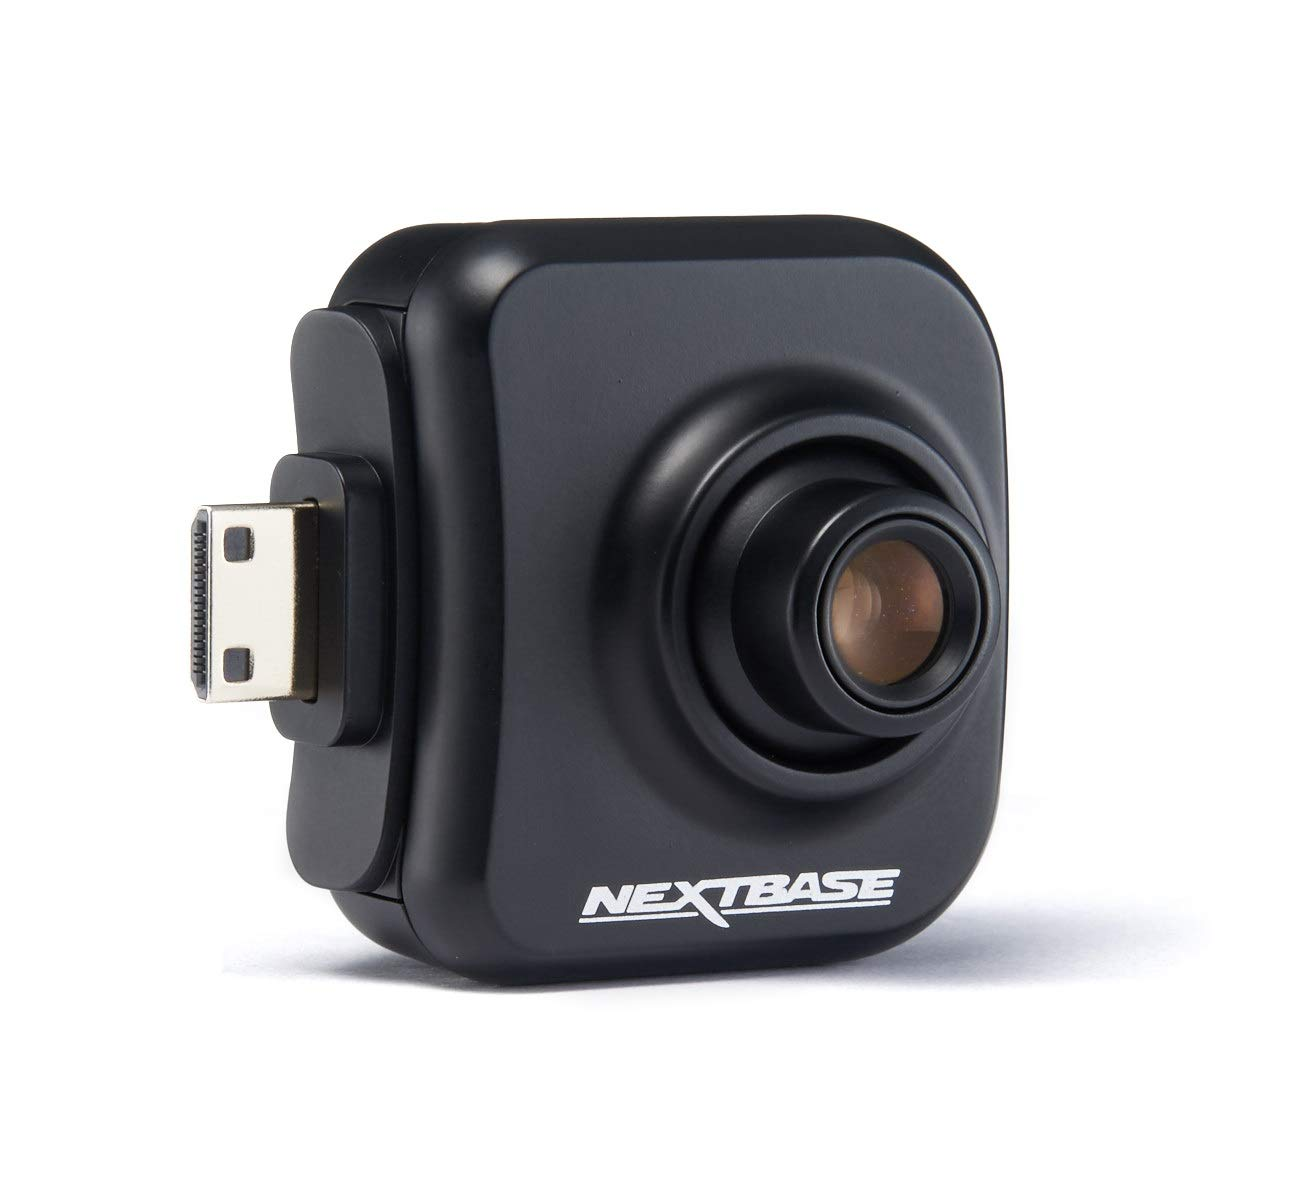 Nextbase-Dash-Cam-Rear-Facing-Camera-Zoom-322422522622-Rear-View